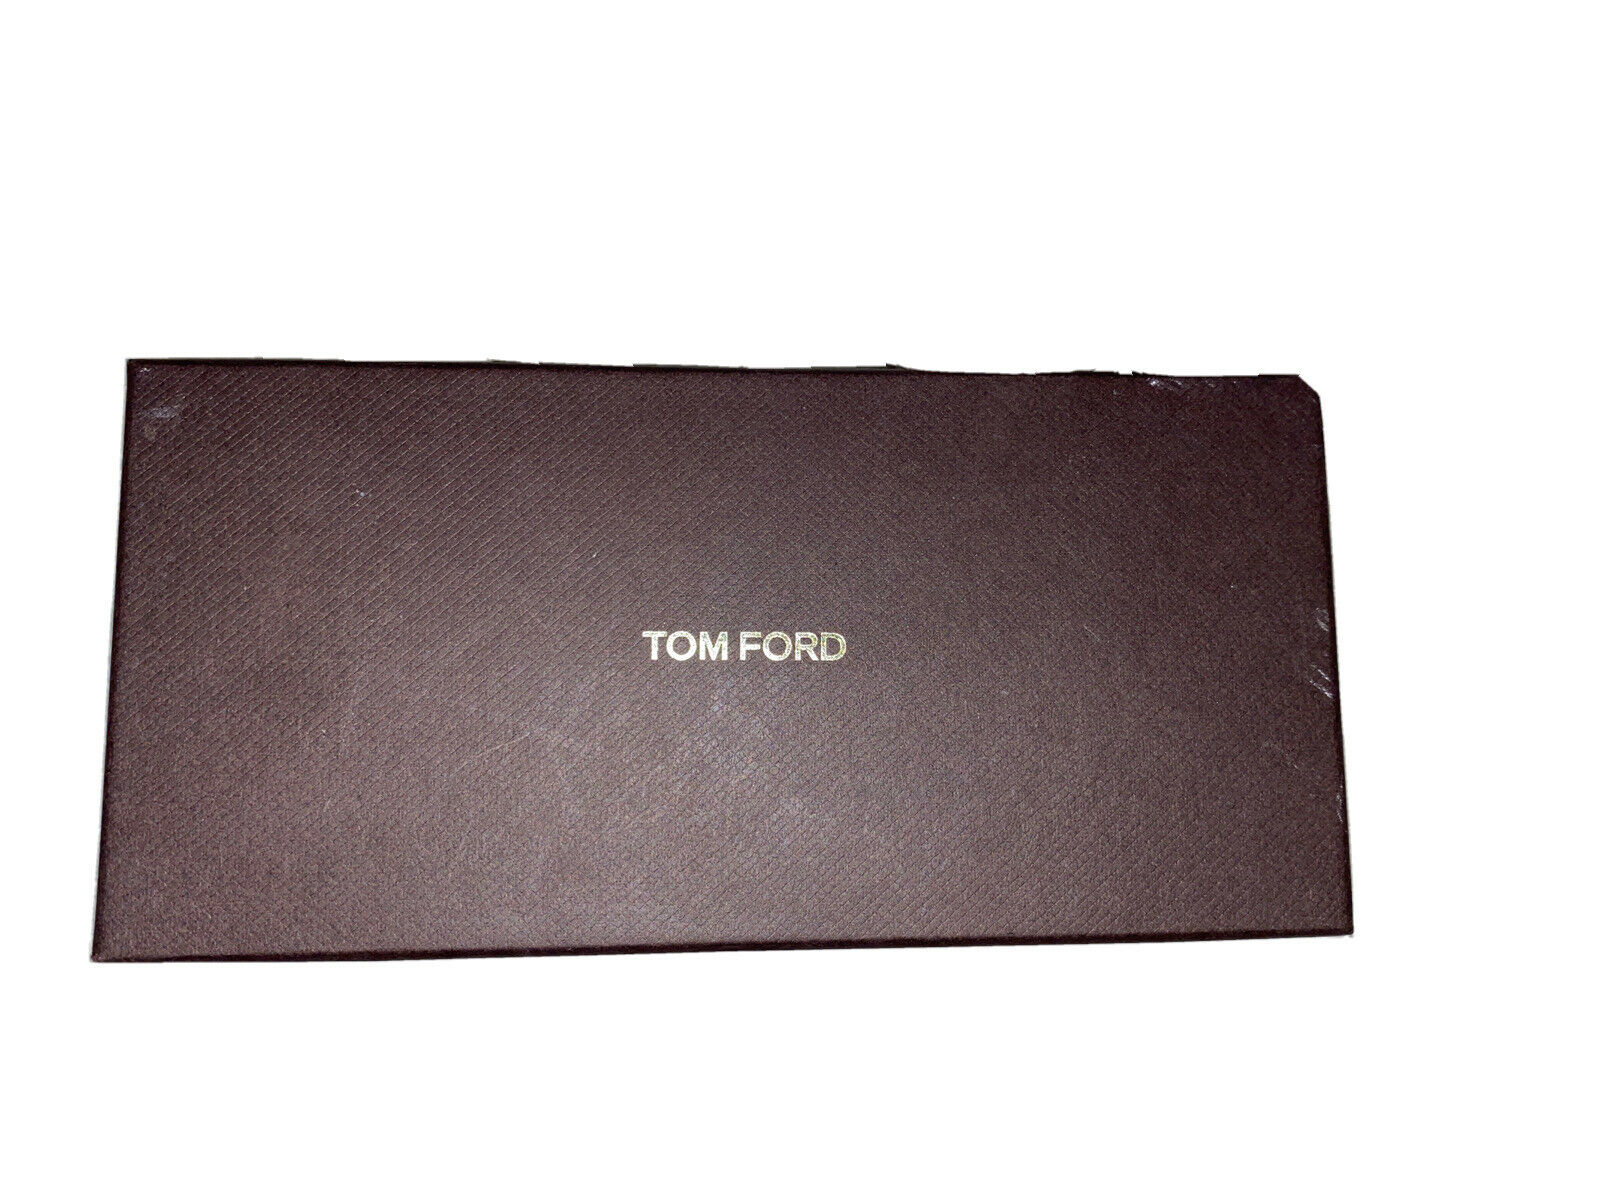 100% Authentic Tom Ford Brown Empty Sunglasses Box With Authenticity Card